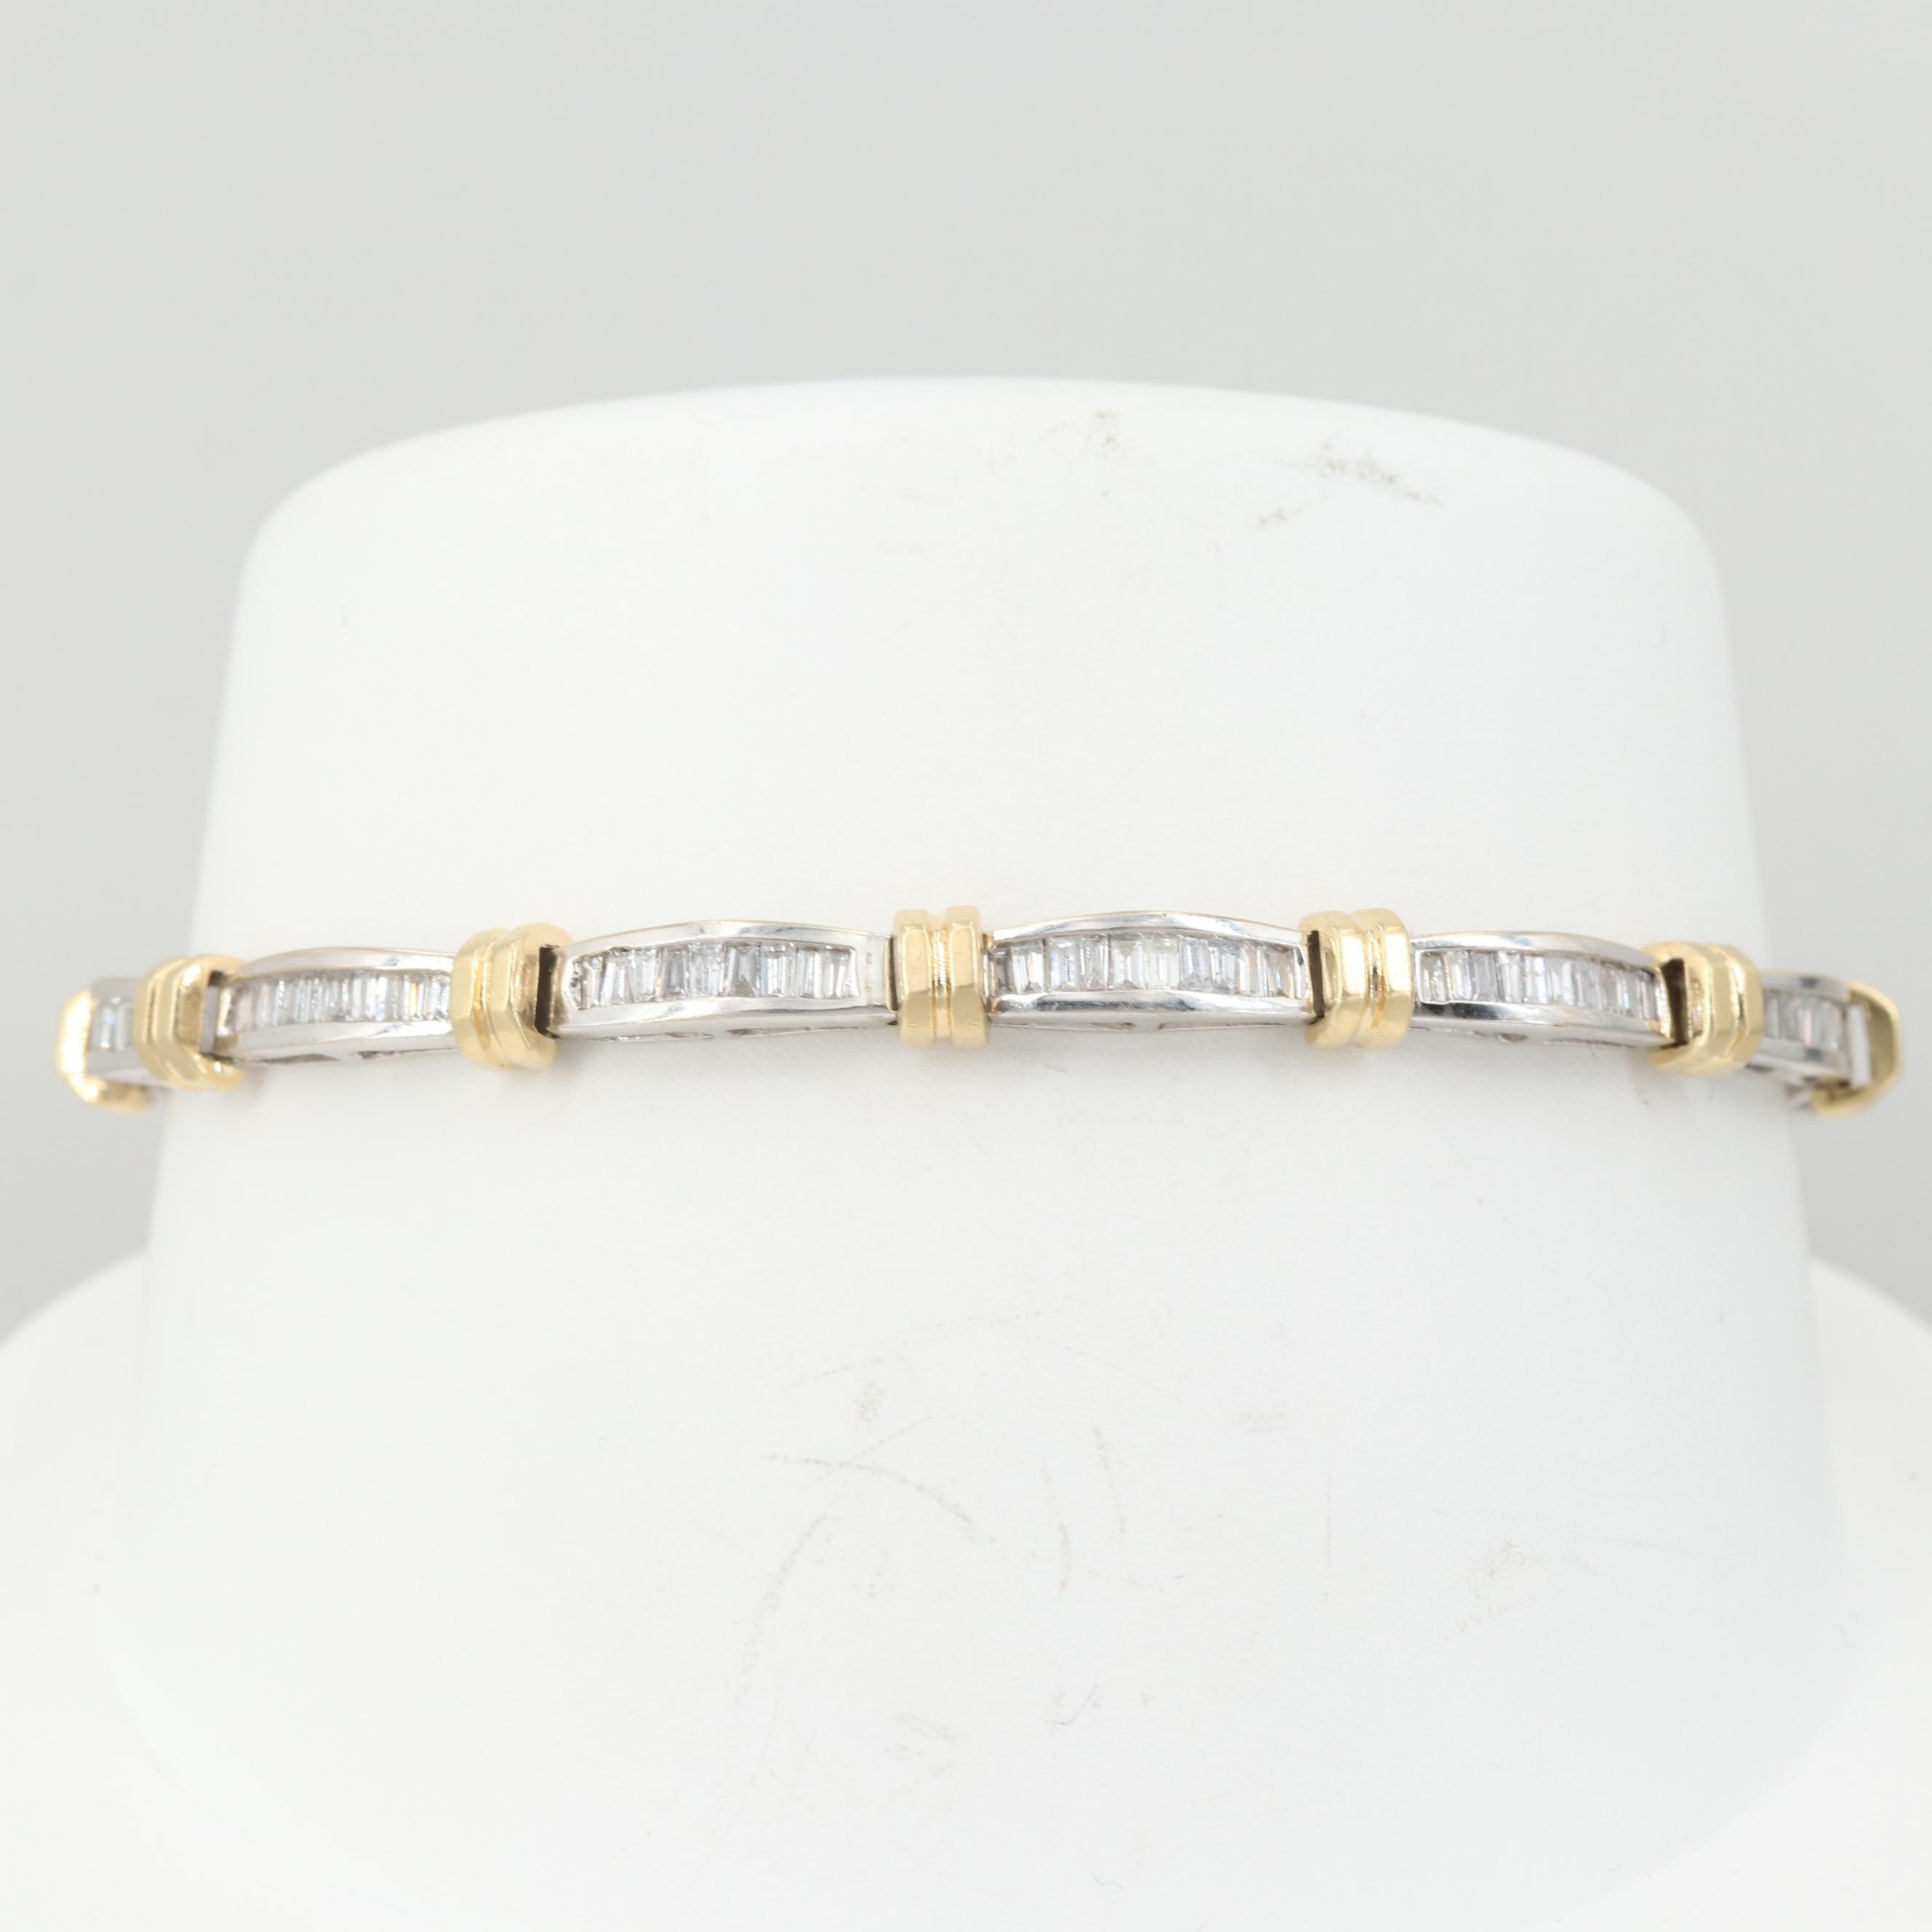 14K White Gold 2.52 CTW Diamond Bracelet with Yellow Gold Accents